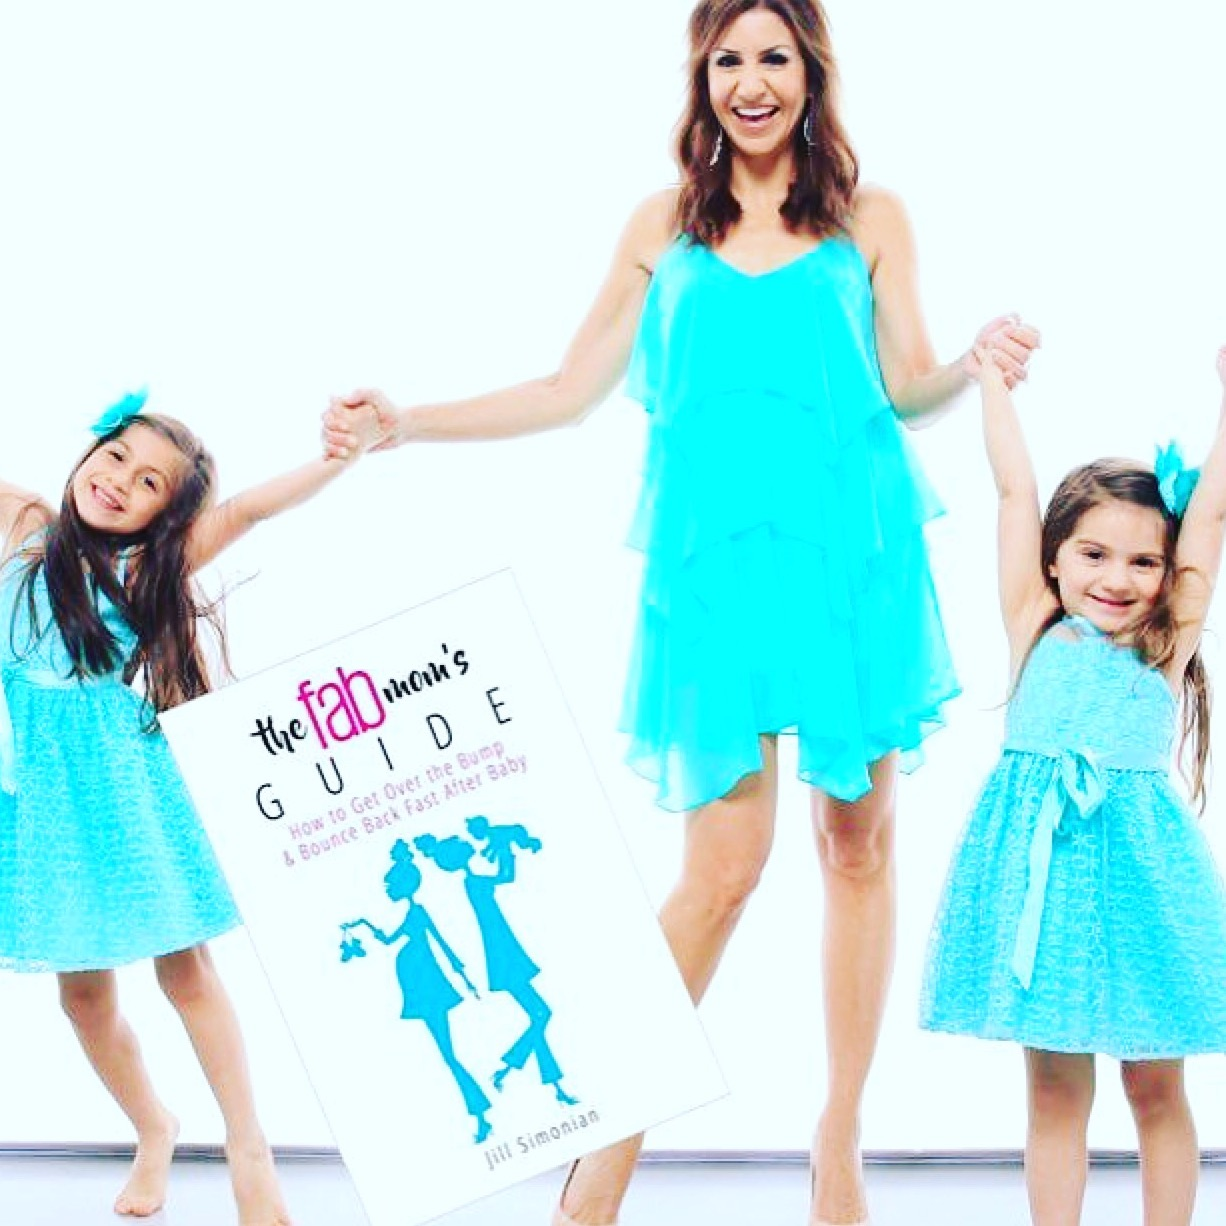 Jill Simonian, author of The FAB Mom's Guide book, holds hands with her daughters.